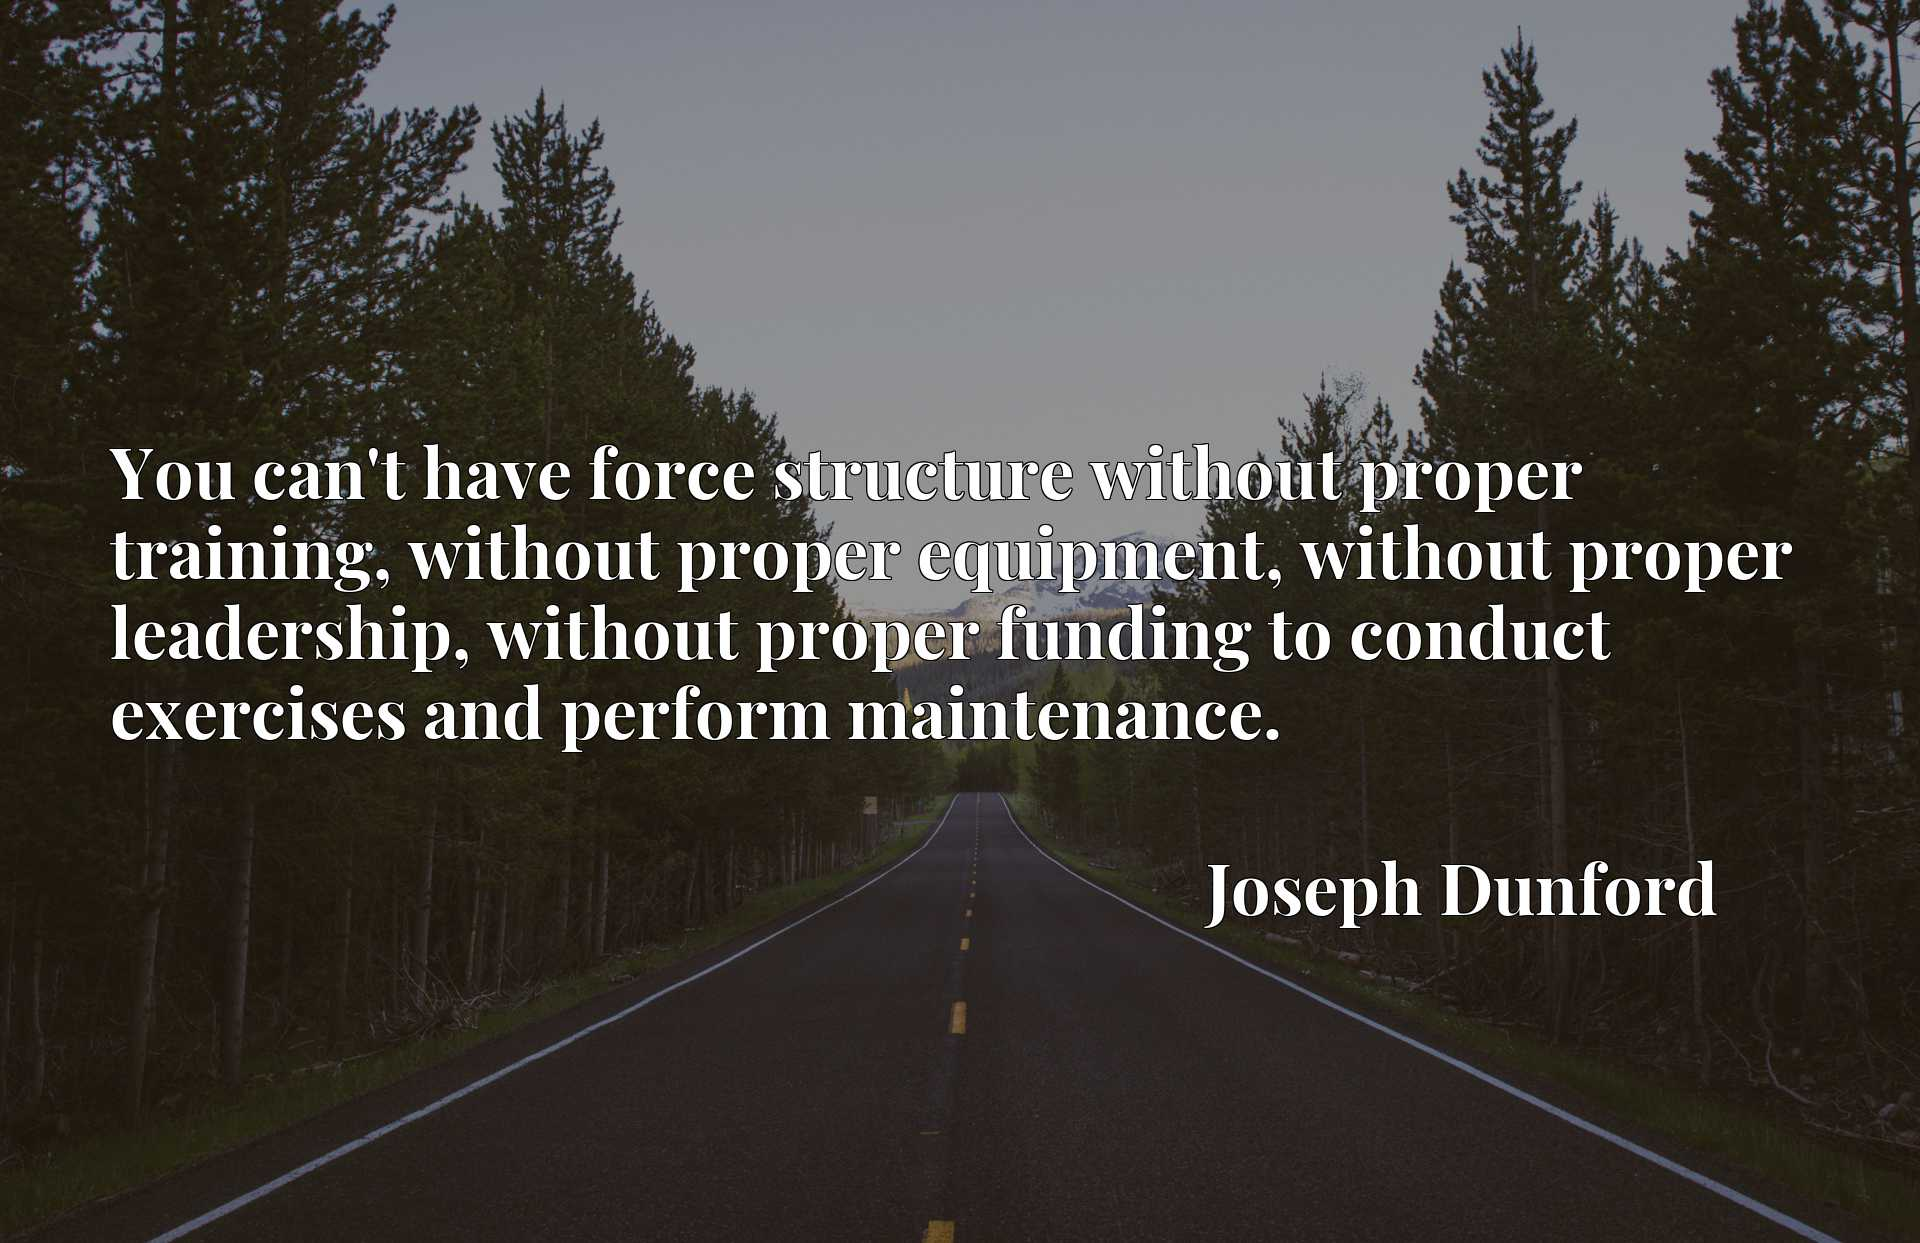 You can't have force structure without proper training, without proper equipment, without proper leadership, without proper funding to conduct exercises and perform maintenance.